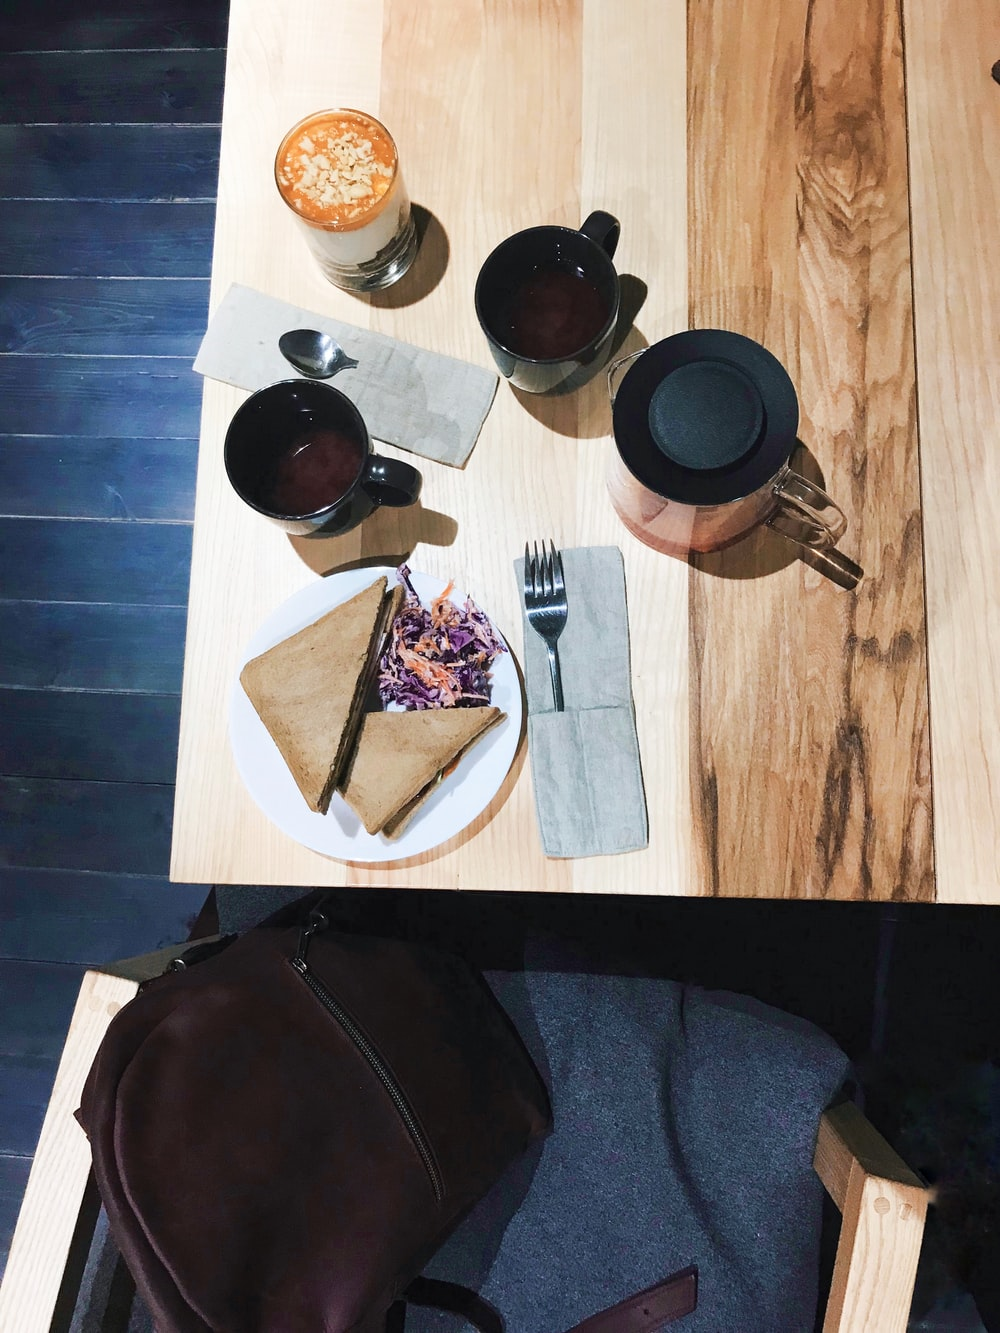 wooden table with cup of coffee and plate of sandwich